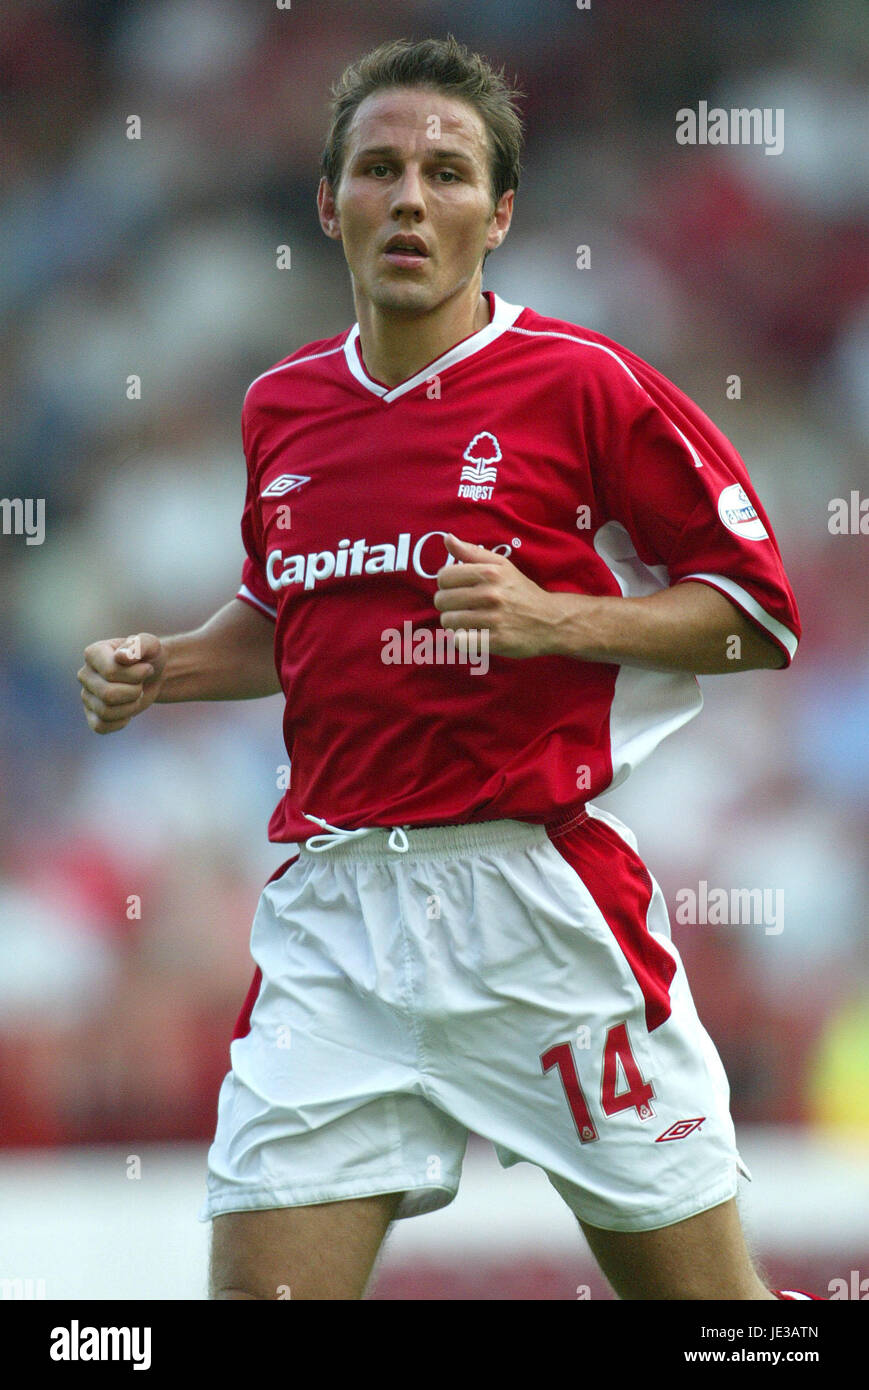 EOIN JESS NOTTINGHAM FOREST FC CITY GROUND NOTTINGHAM ENGLAND 09 August 2003 - Stock Image